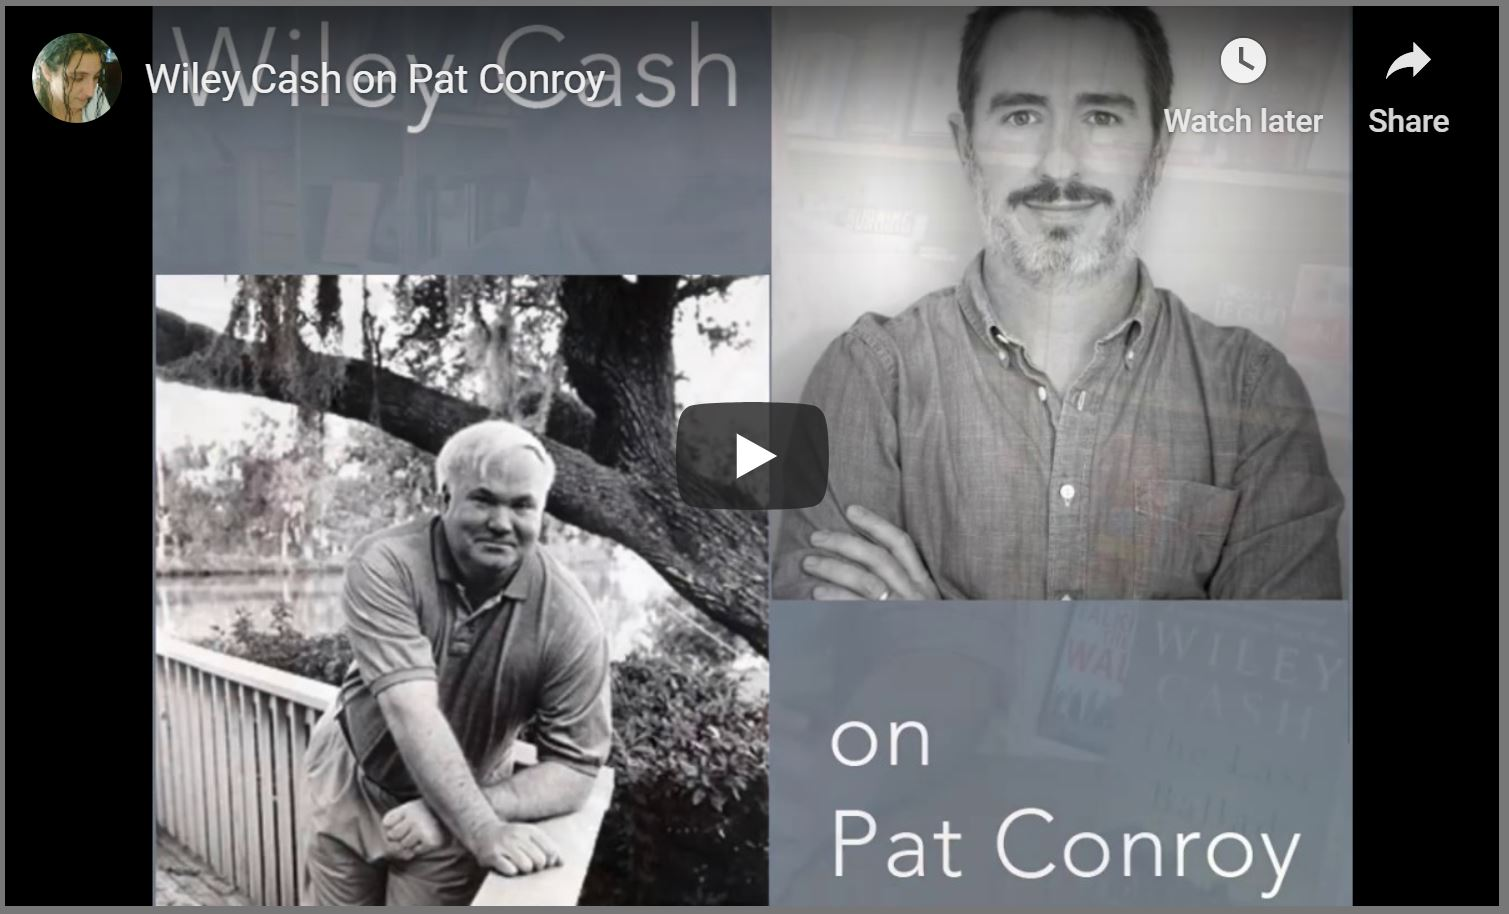 Wiley Cash on Pat Conroy